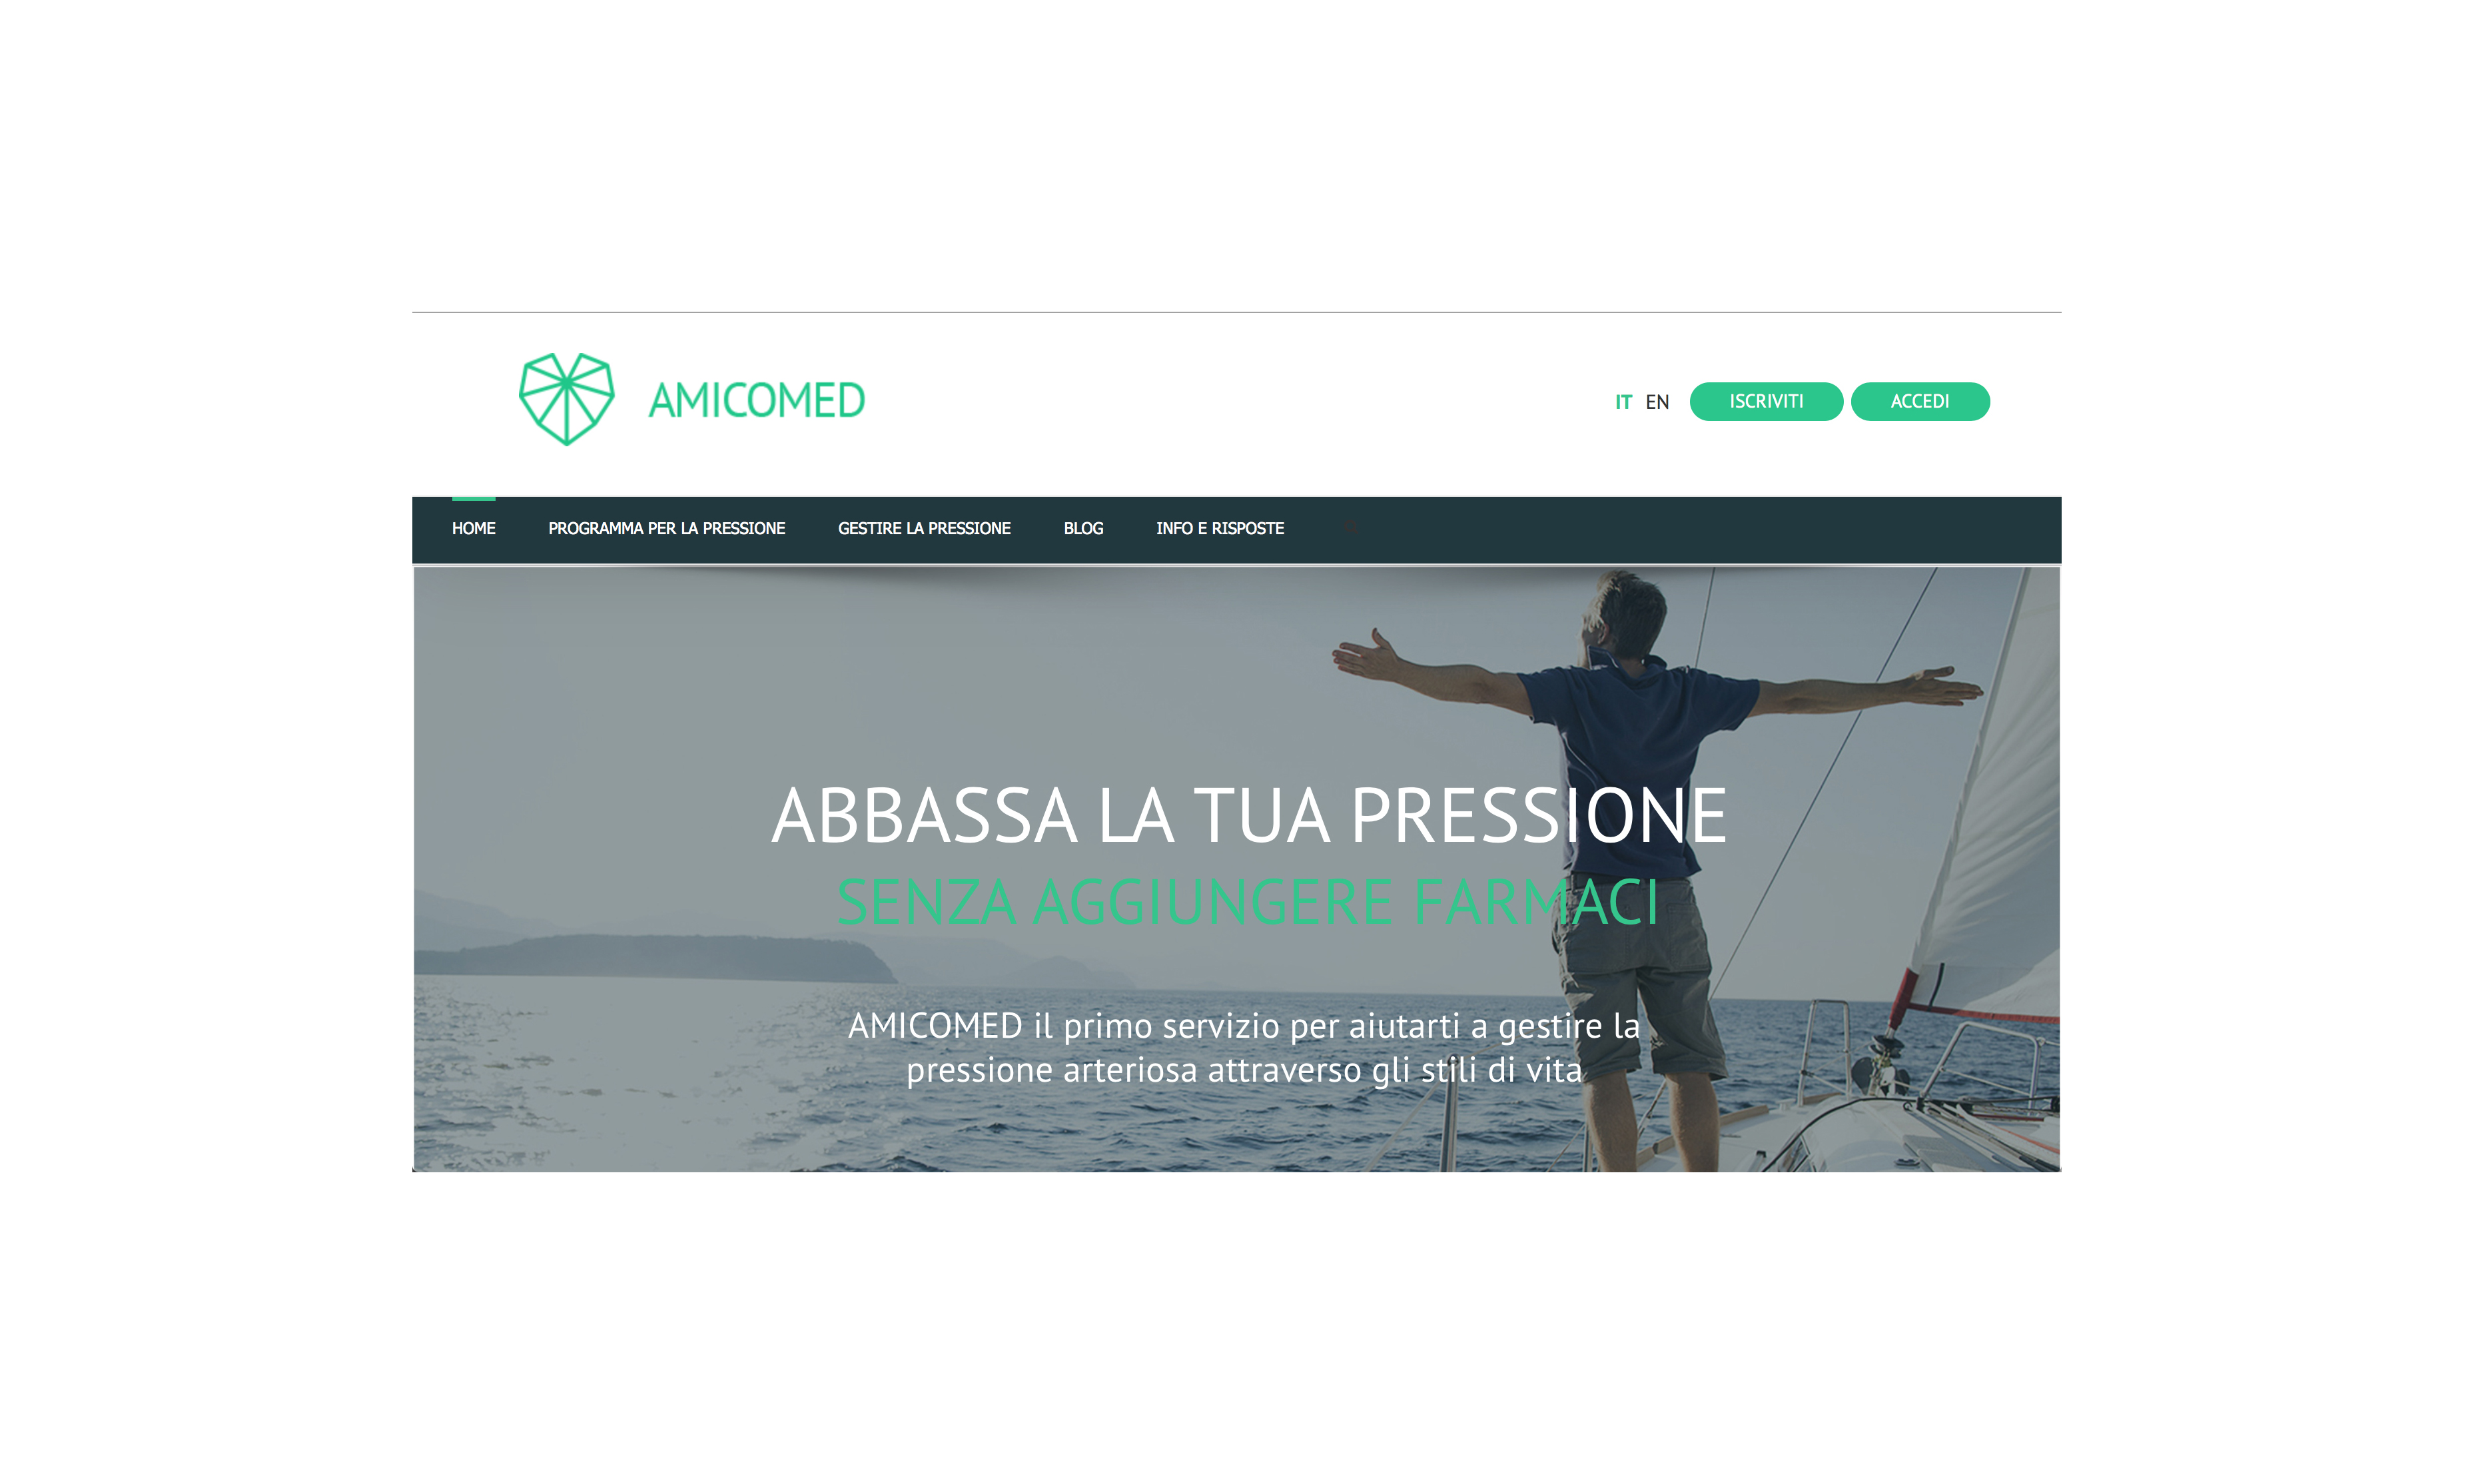 amicomed home page